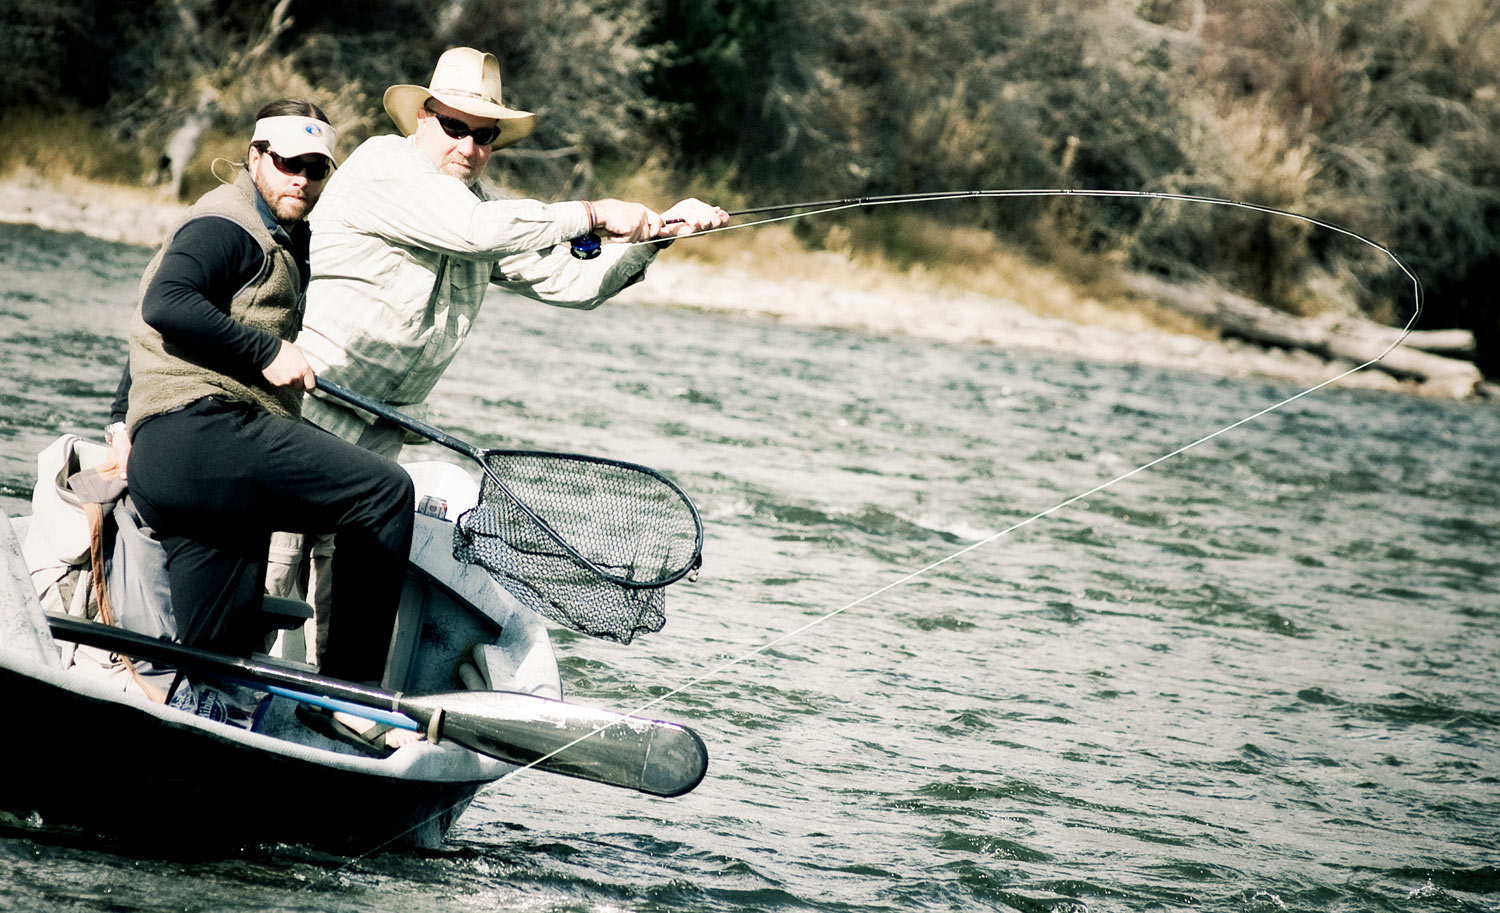 Three ways we lose fish fly fishing gink and gasoline for Fly fishing 101